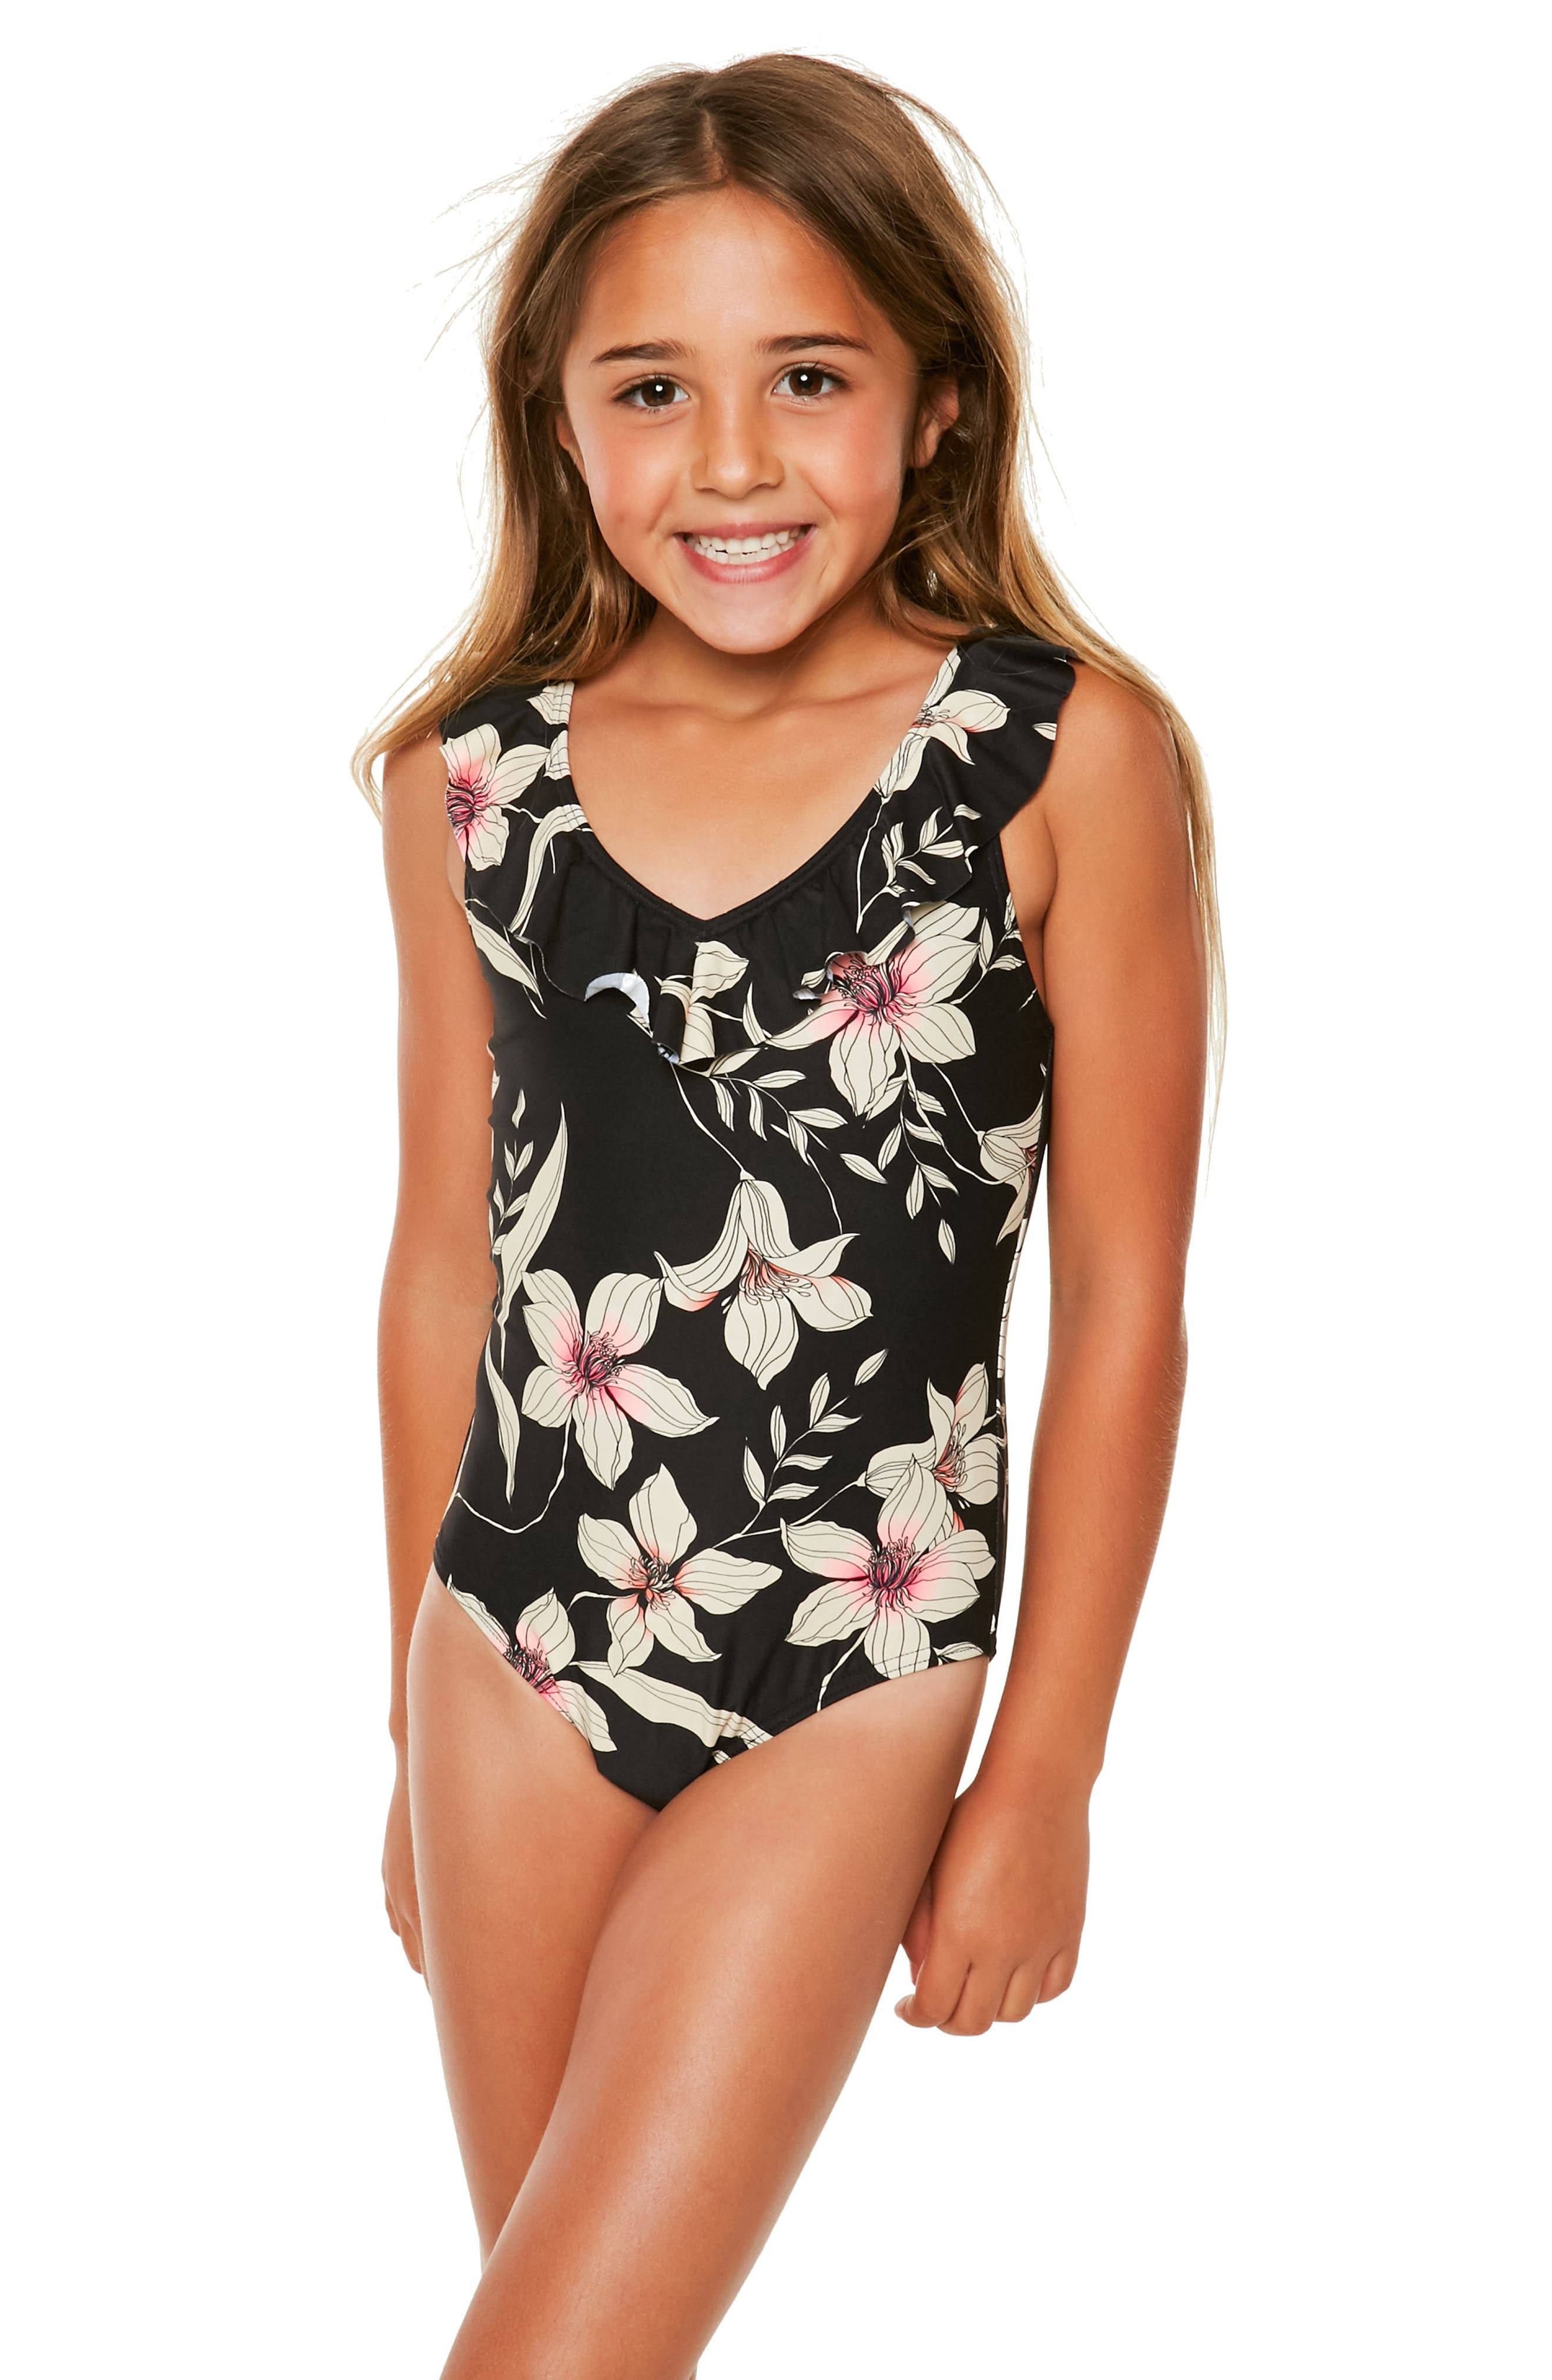 Albany Ruffle One-Piece Swimsuit,                             Alternate thumbnail 2, color,                             001